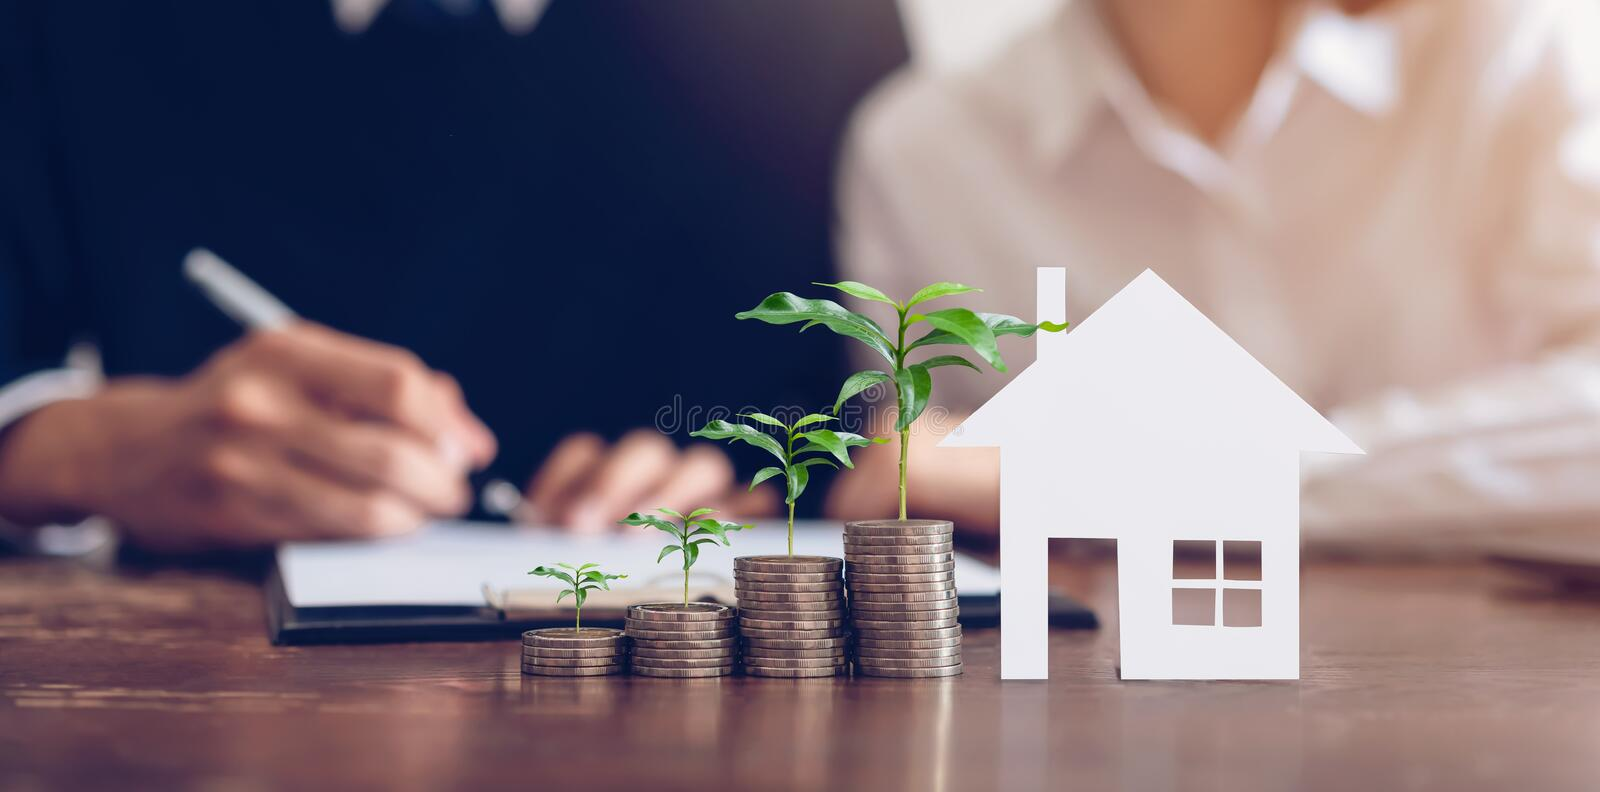 Couples signed a contract to buy a house from the broker. Coin to stack money and model houses placed on the table. Couples signed a contract to buy a house stock photos